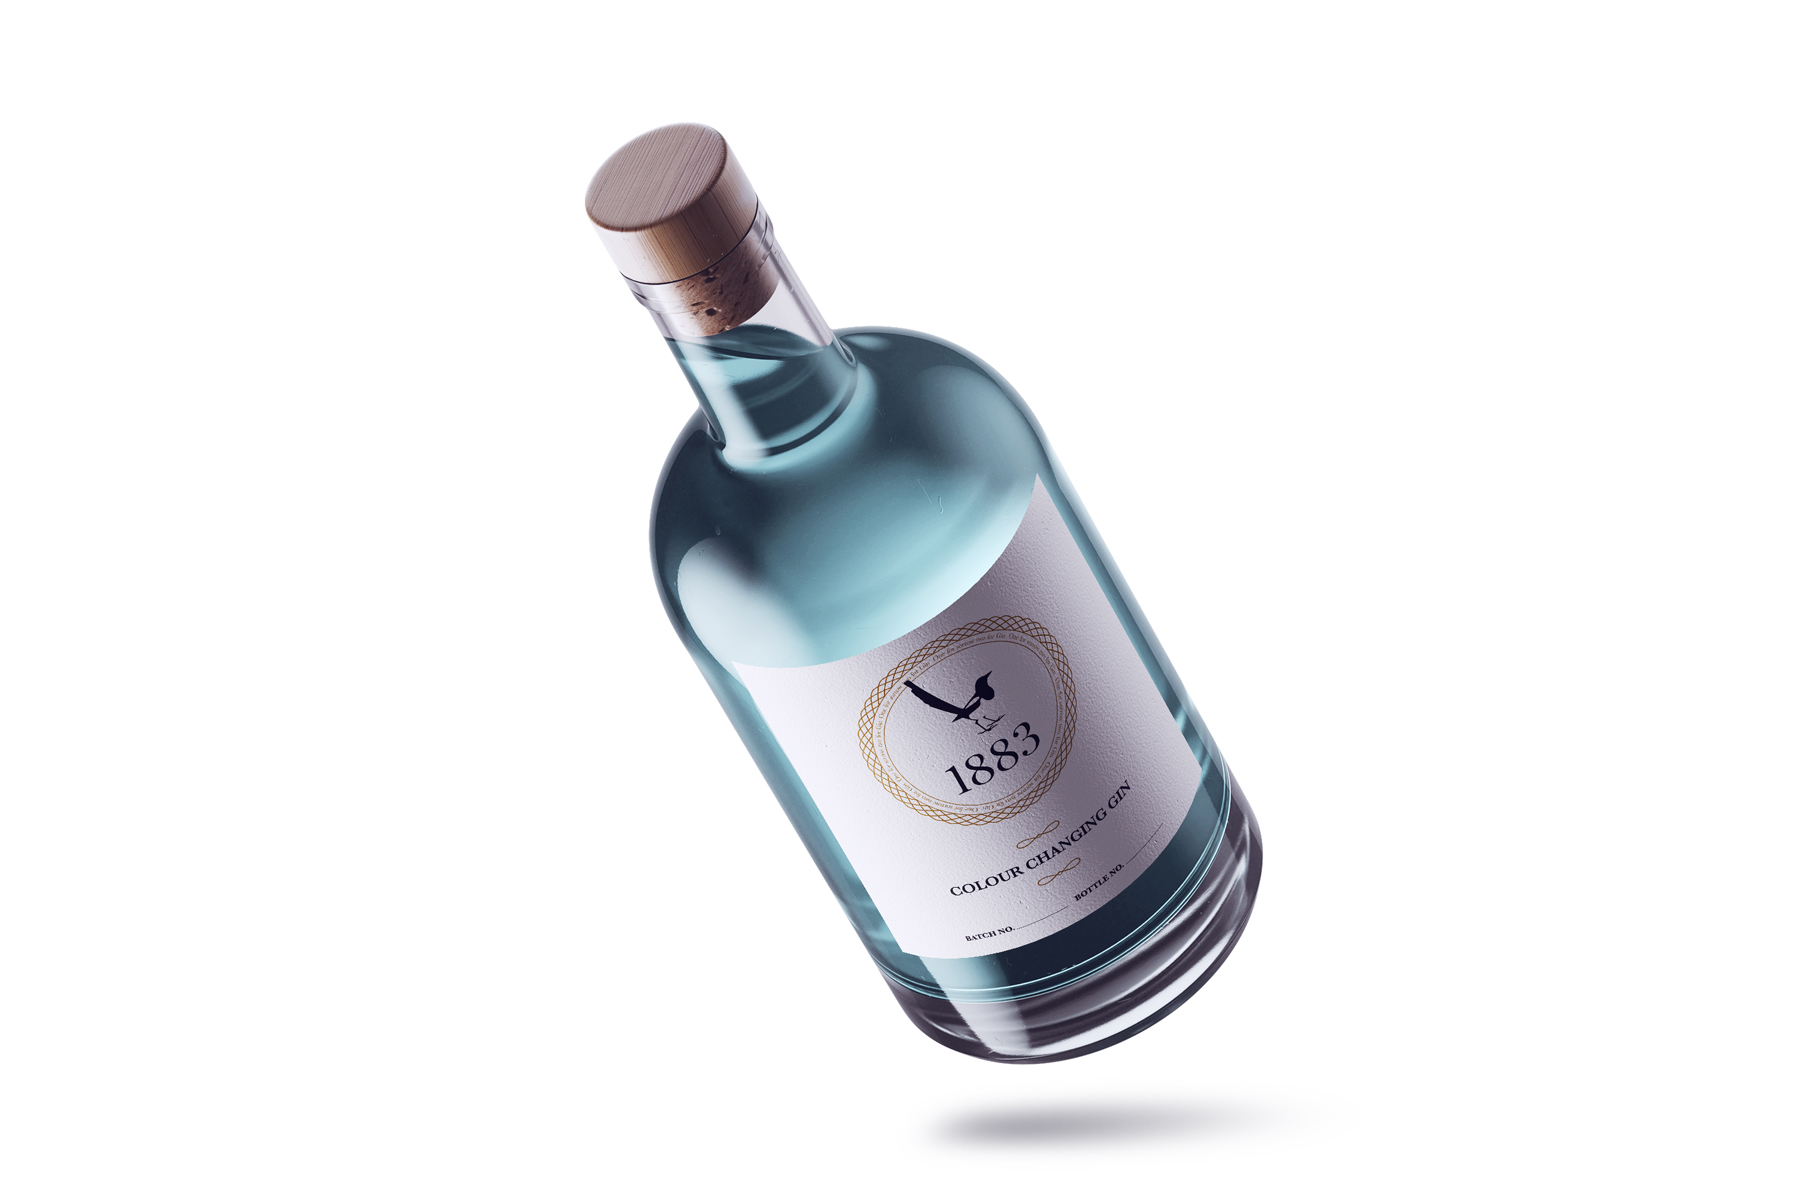 1883 colour changing gin